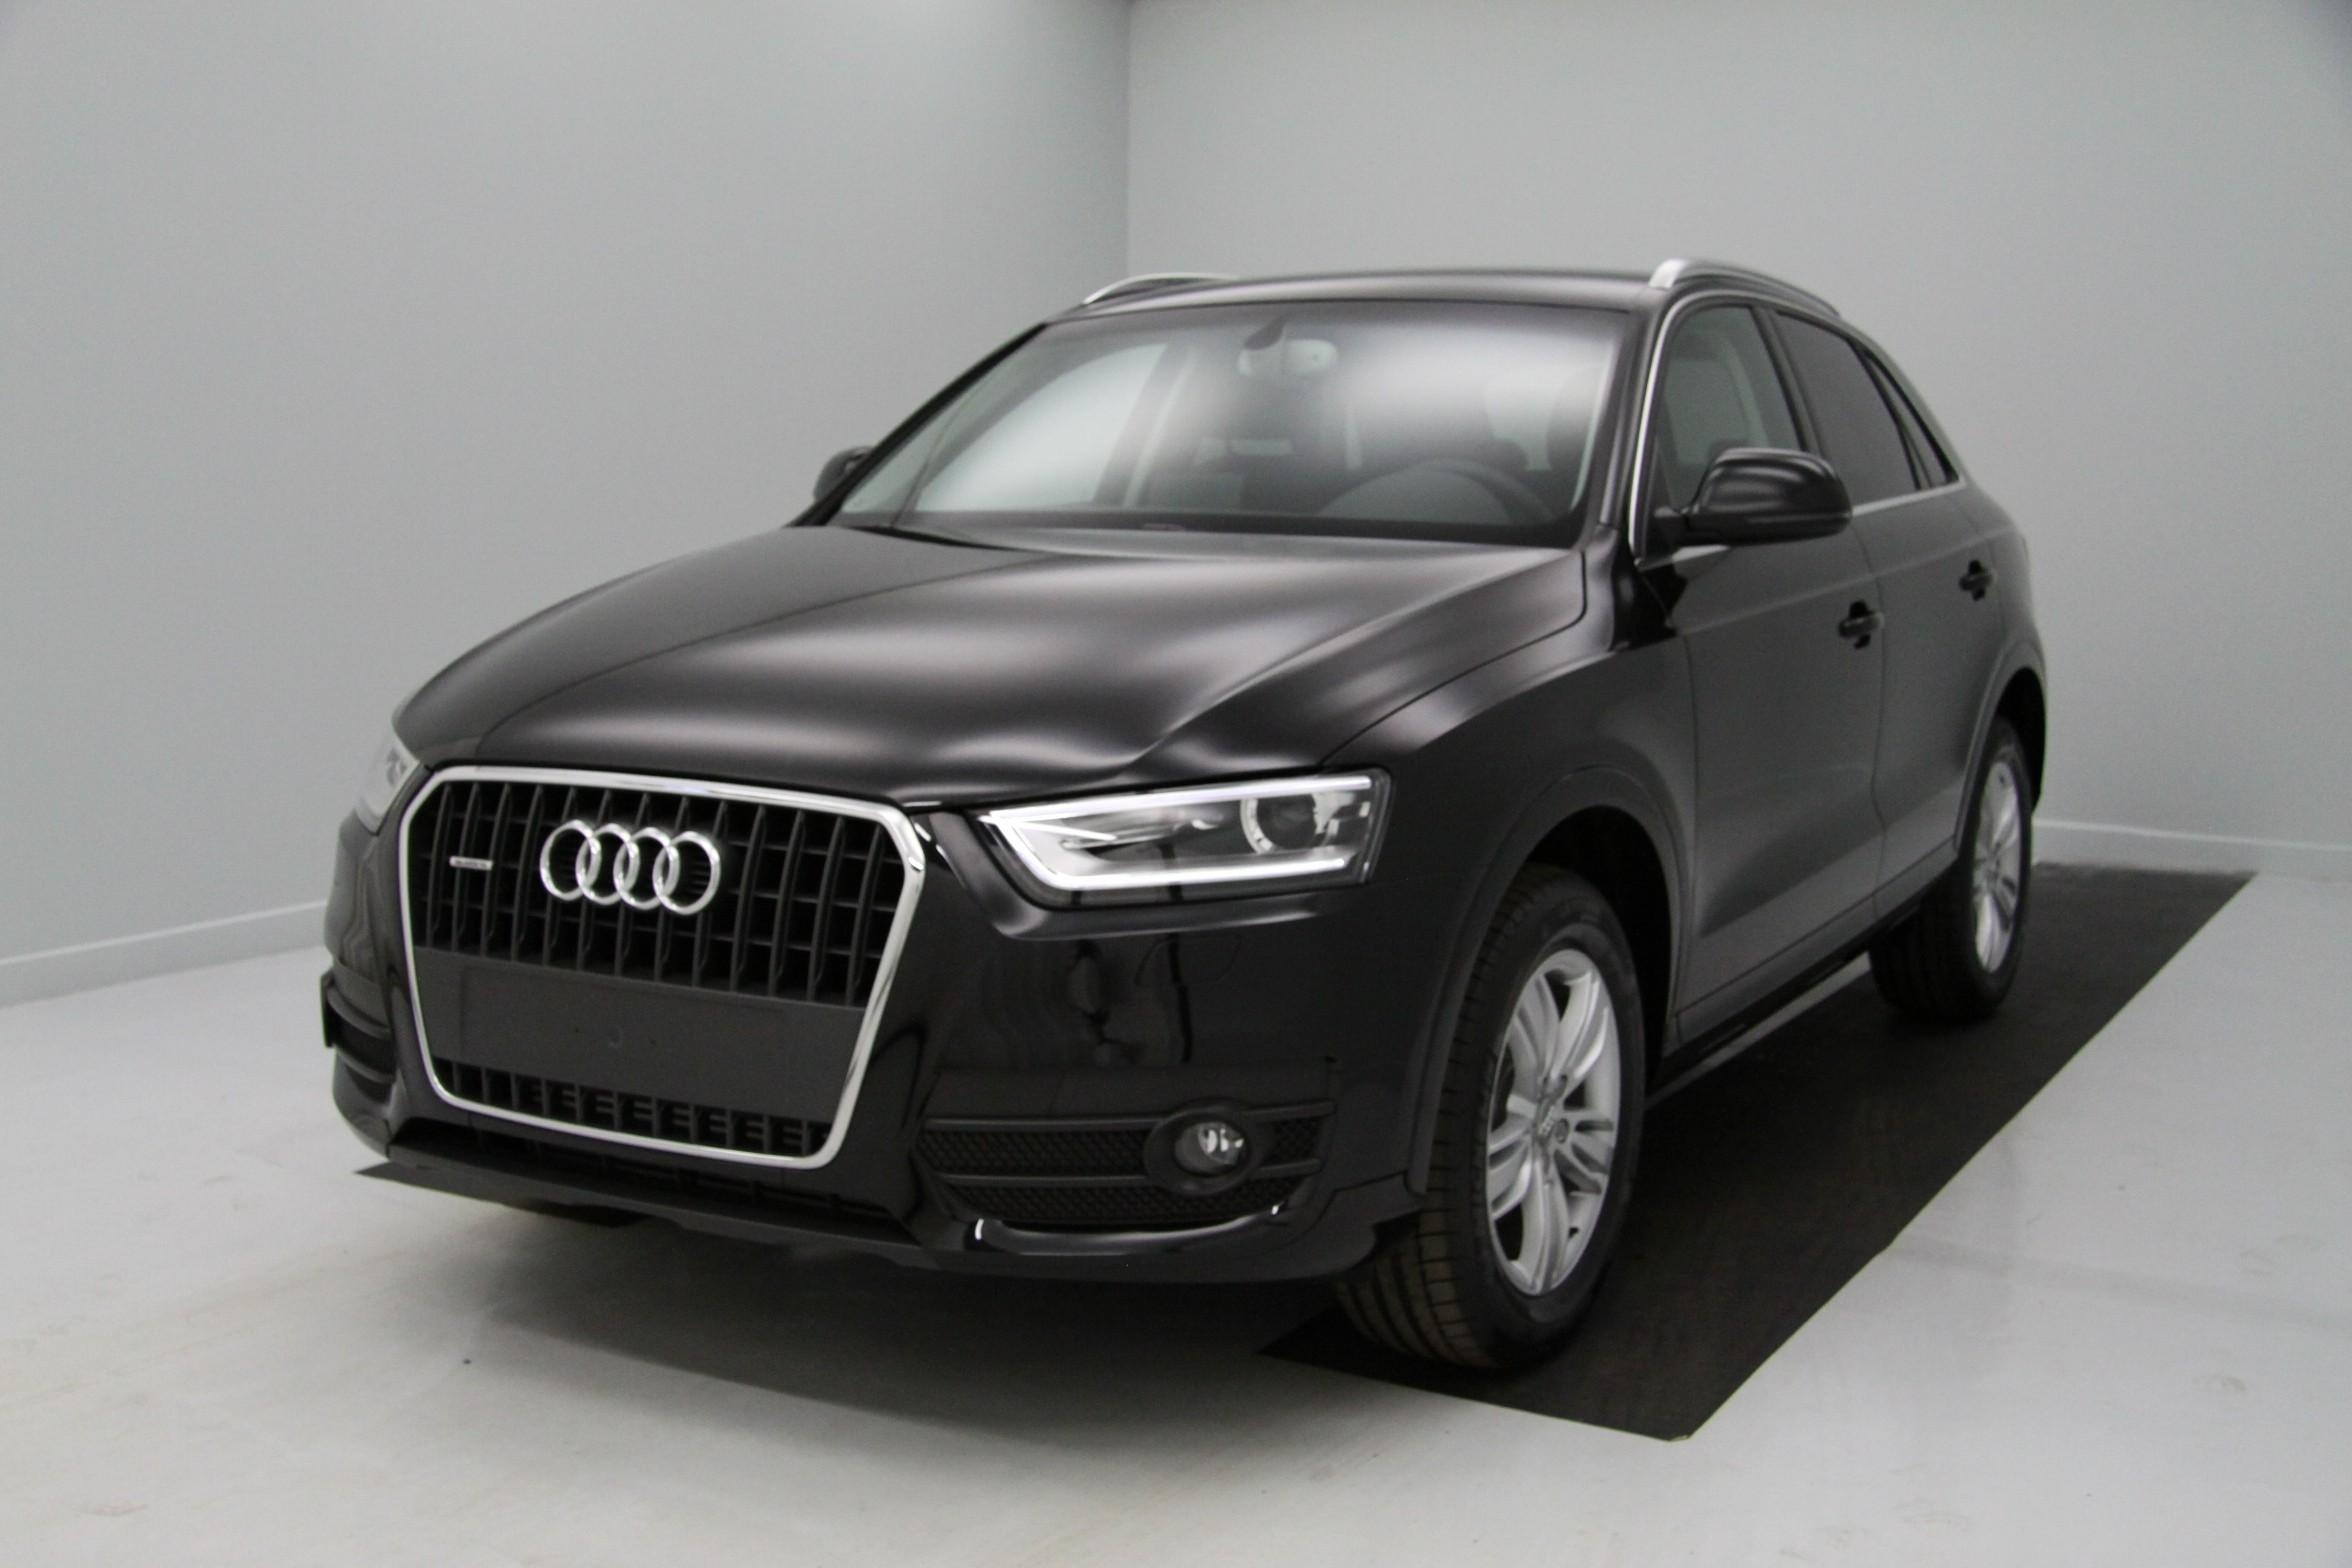 audi q3 quattro s line stronic 2 0 tdi 184 cv v hicules neufs. Black Bedroom Furniture Sets. Home Design Ideas